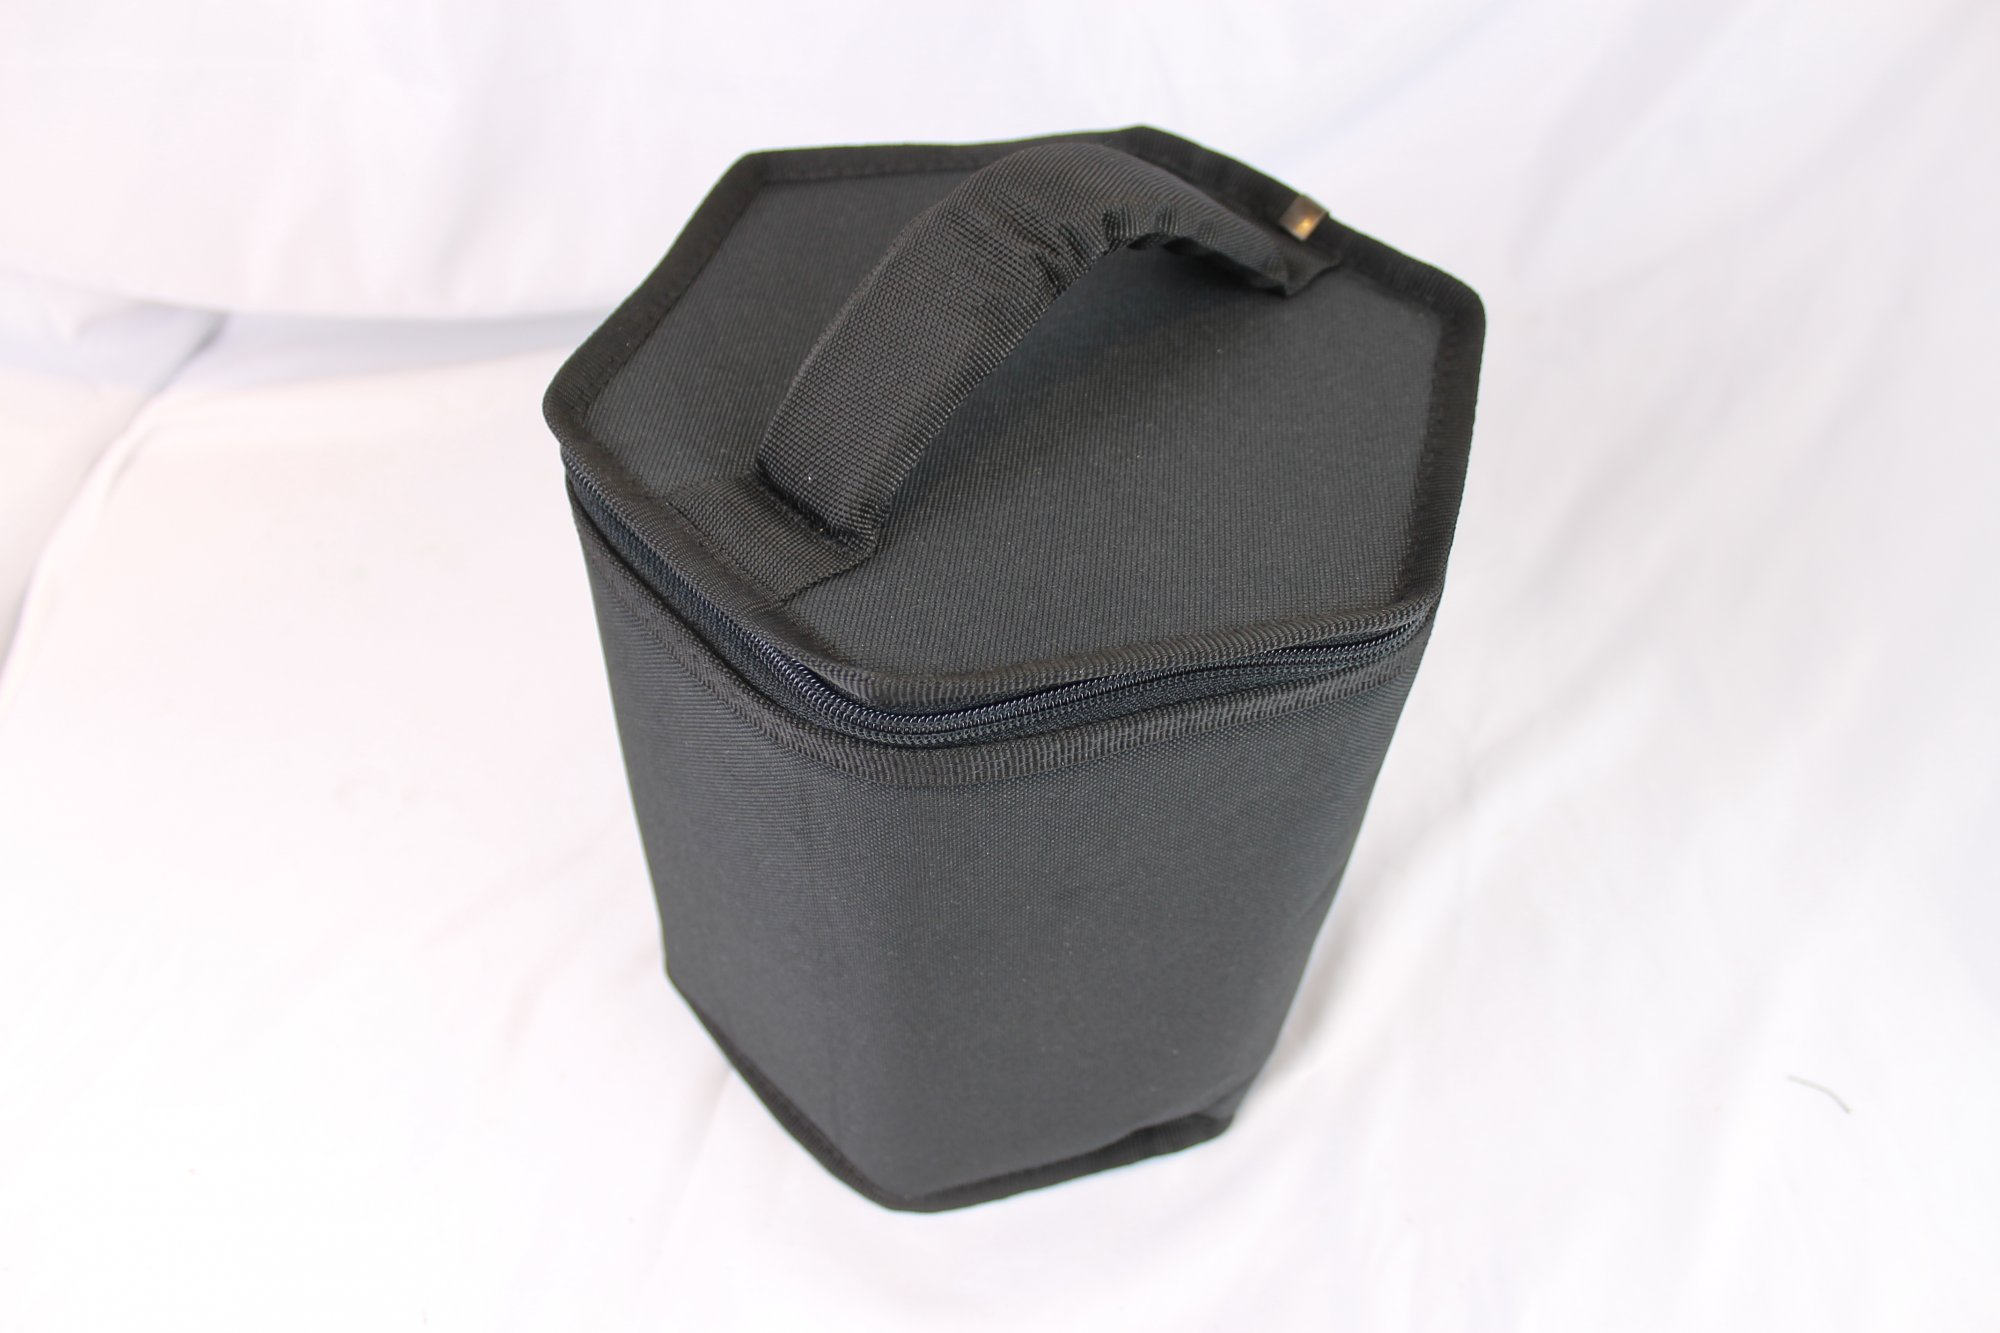 NEW Black Fuselli Gig Bag for Concertina 9 Height x 7.5 Diameter